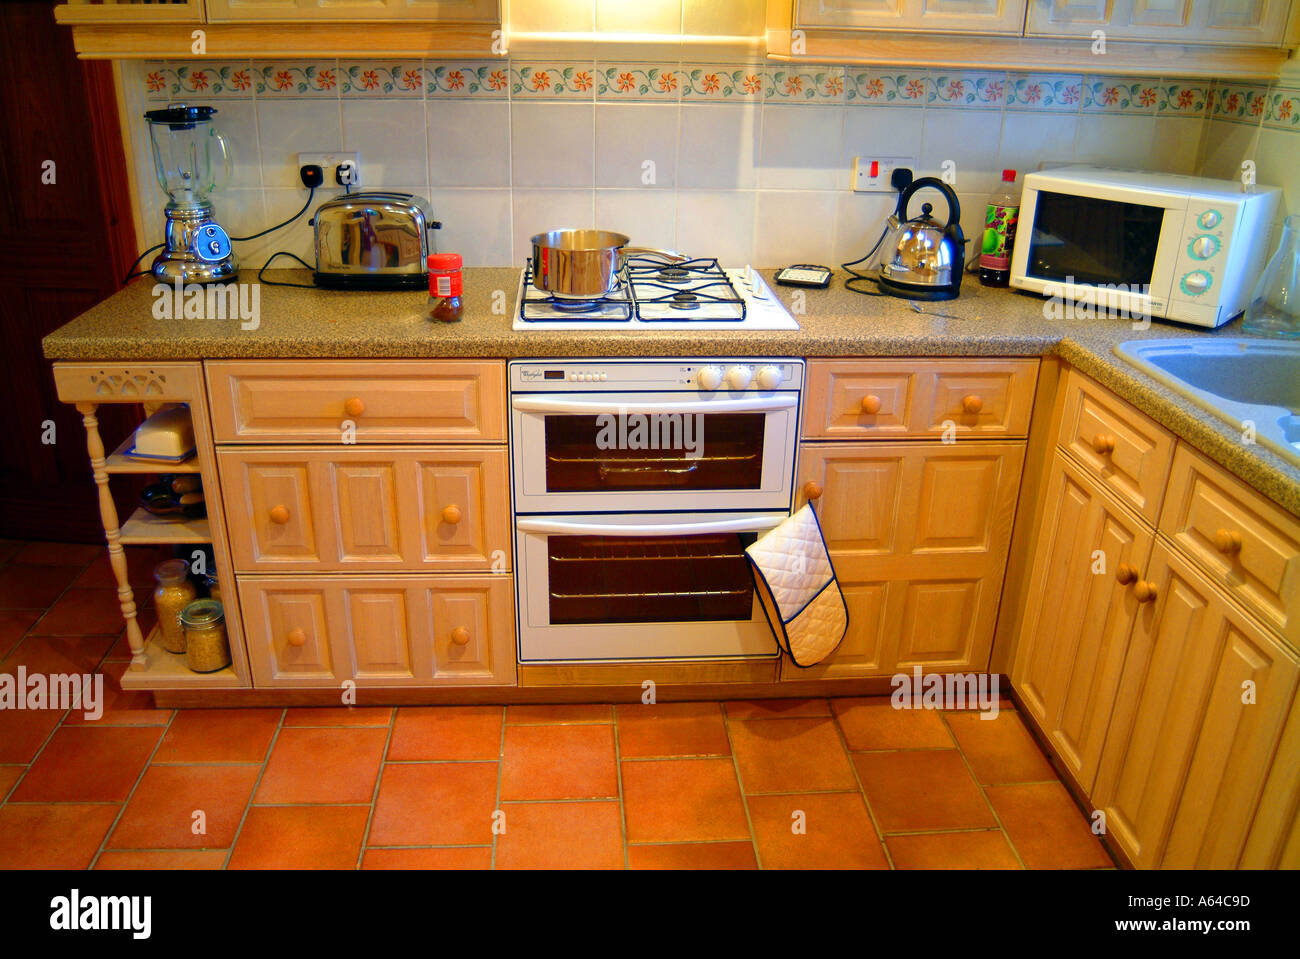 open oven in kitchen. stock photo - kitchen oven chrome kettle toaster blender microwave open plan interior domestic home house room empty nobody food micr in